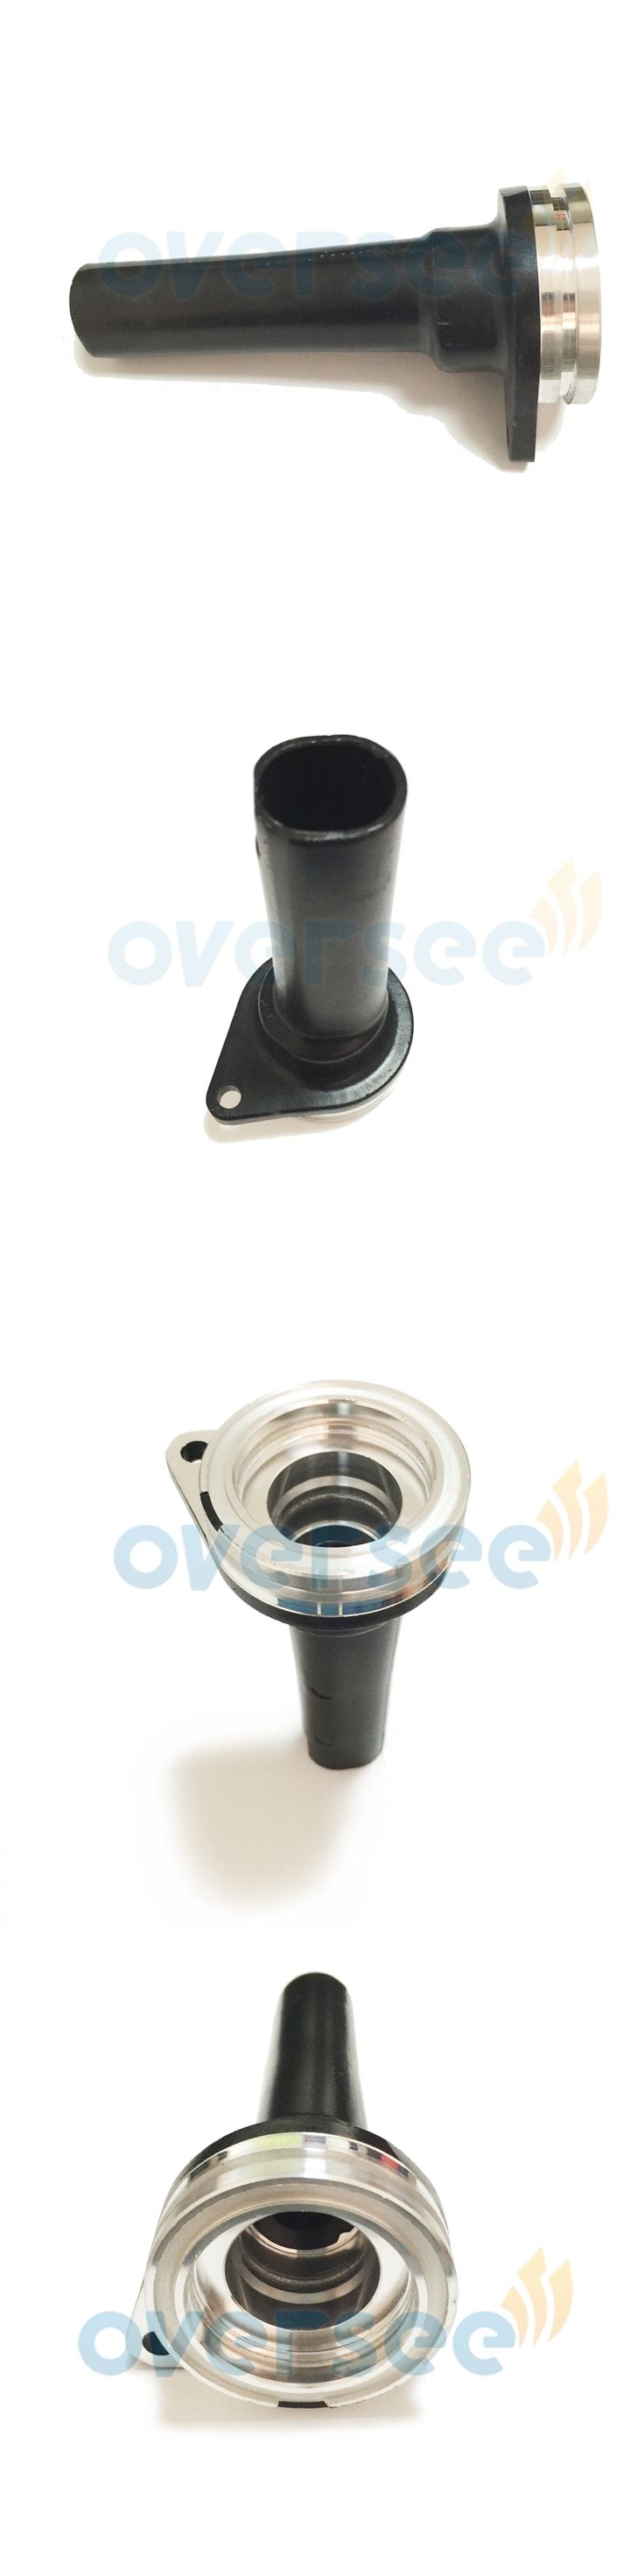 OVERSEE 6B4-15396-00-CA Housing,Oil Seal Housing For Yamaha 15HP Outboart Engine Motor Parts 15C 6B4-15396